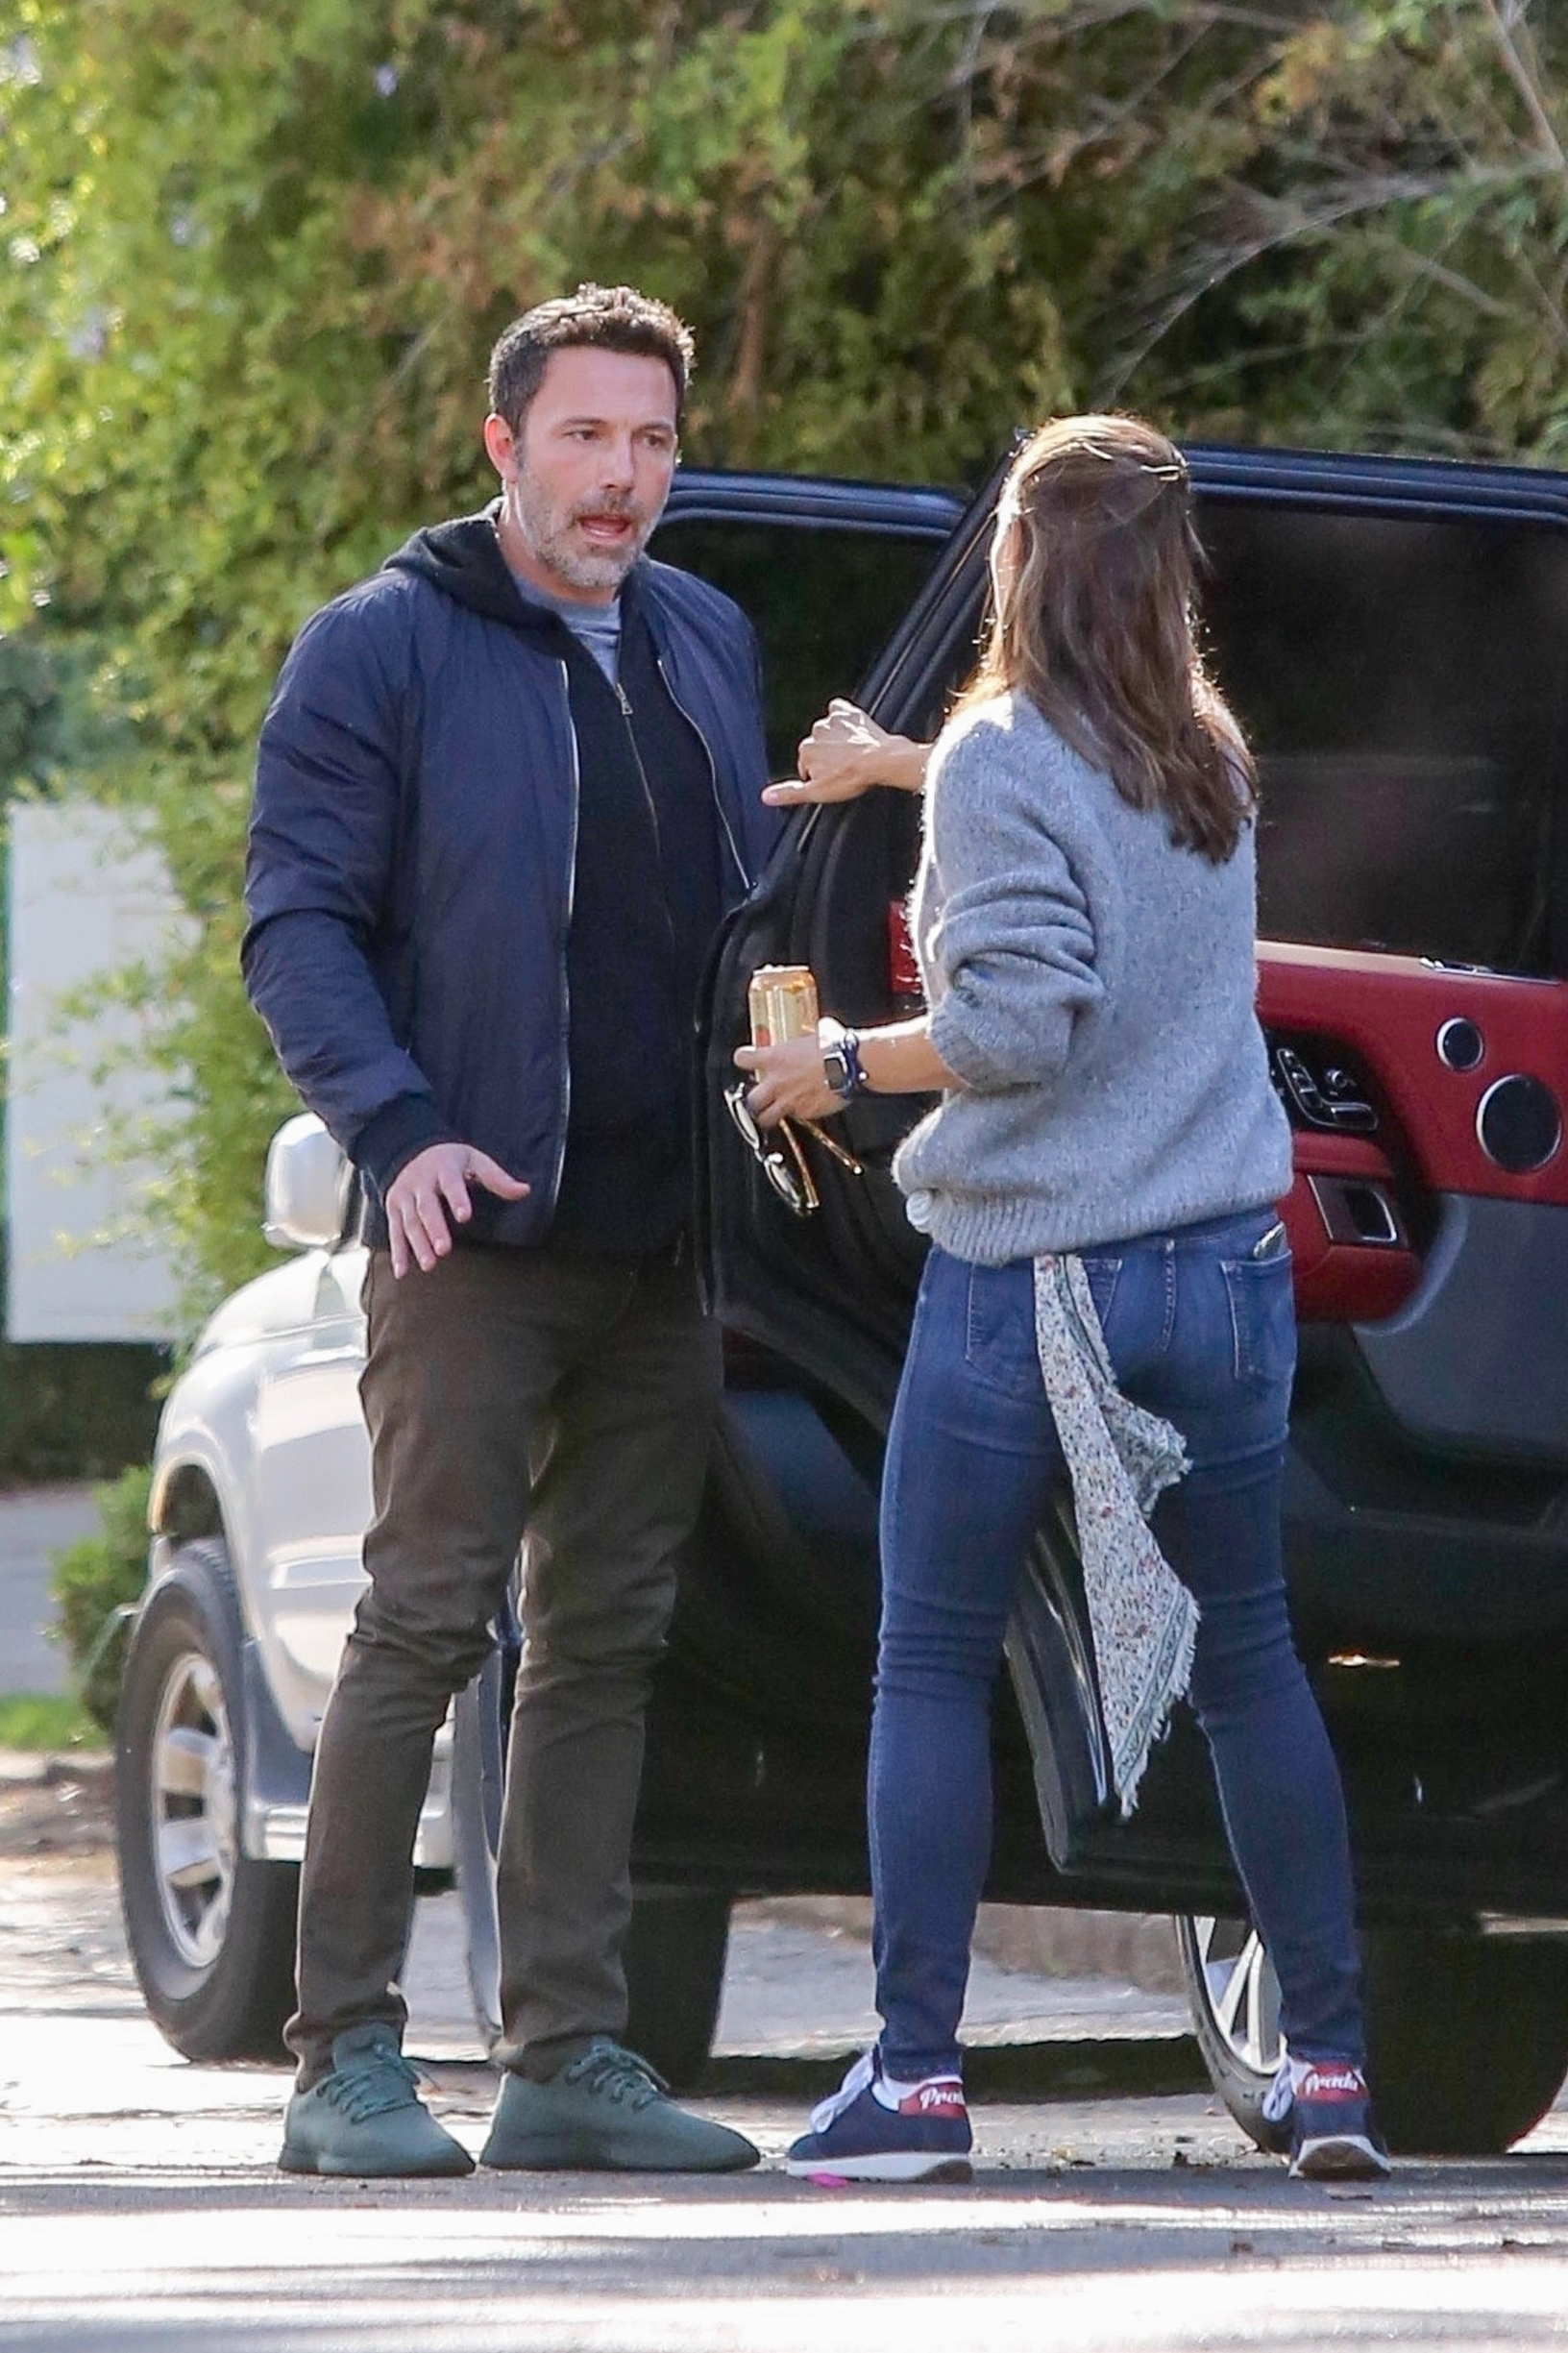 Brentwood, CA  - *EXCLUSIVE* Ex's Ben Affleck and Jennifer Garner have a tense conversation outside her house. The former husband and wife drove away on Ben's Range Rover with Jen on the driver's seat while unhappy Ben hopped in on the passenger's seat.  BACKGRID USA 29 NOVEMBER 2019, Image: 485588443, License: Rights-managed, Restrictions: , Model Release: no, Credit line: BENS / BACKGRID / Backgrid USA / Profimedia